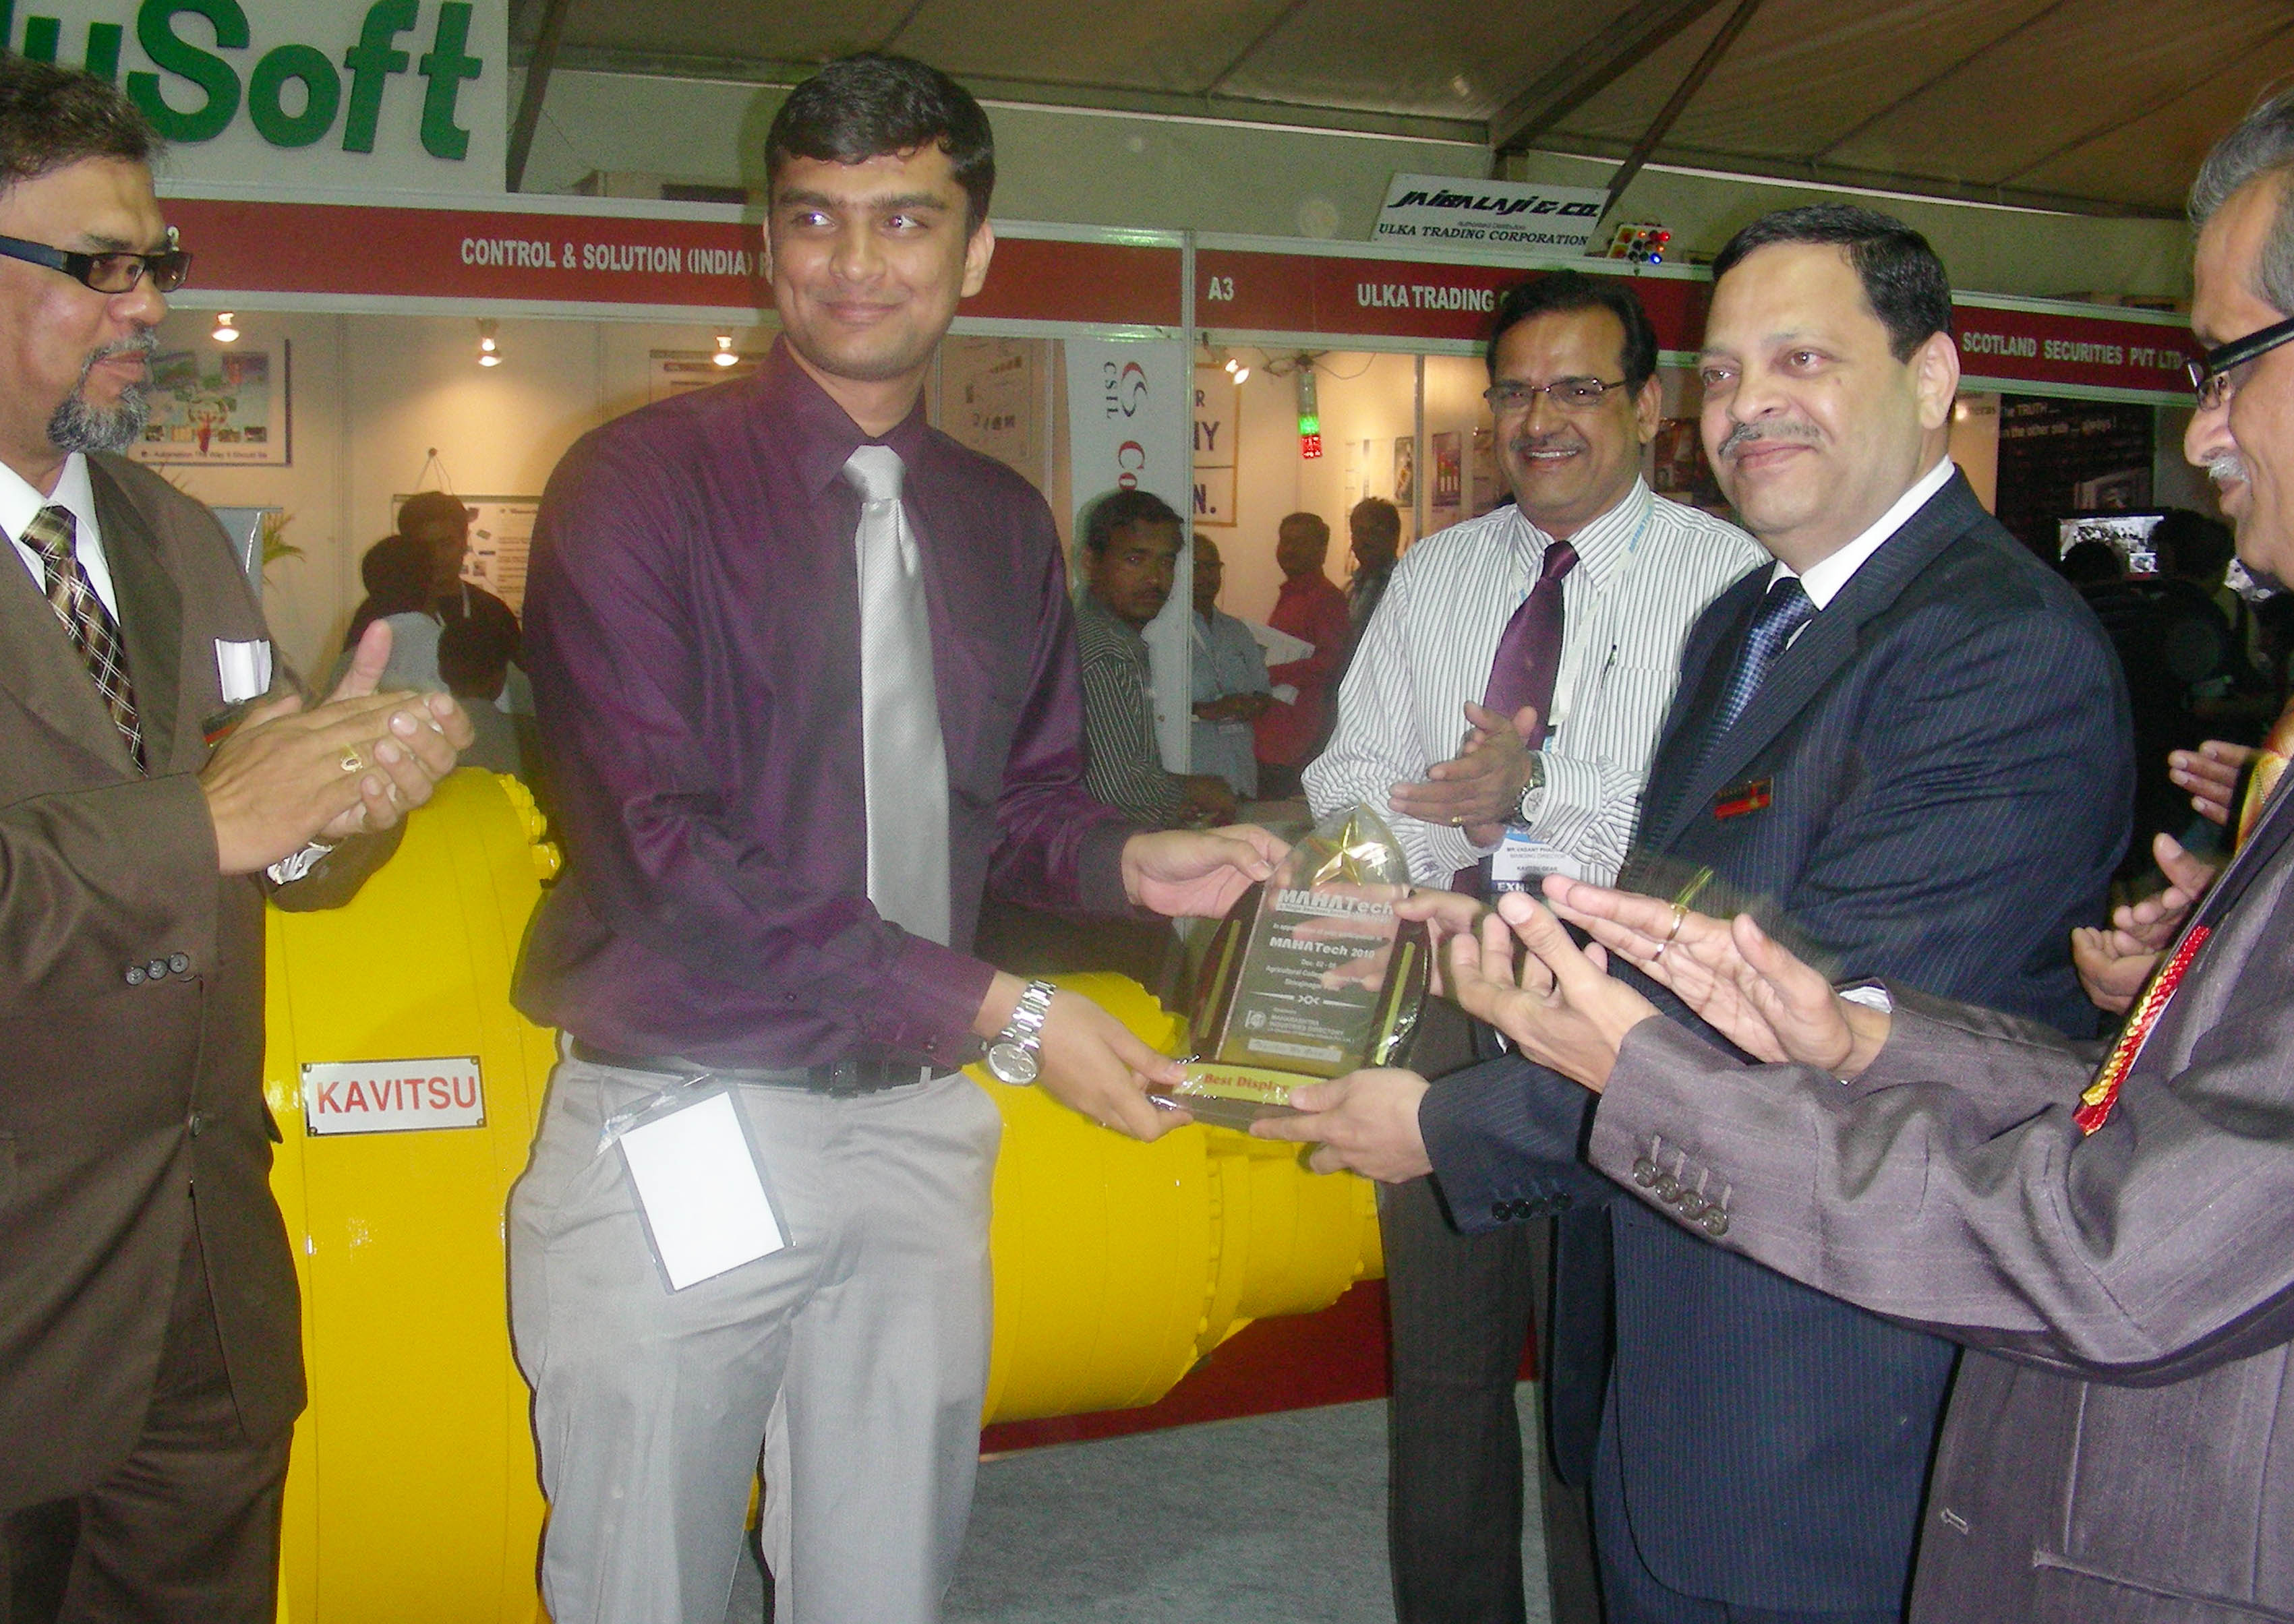 First Best Display Award in Mahatech 2010 Exhibition